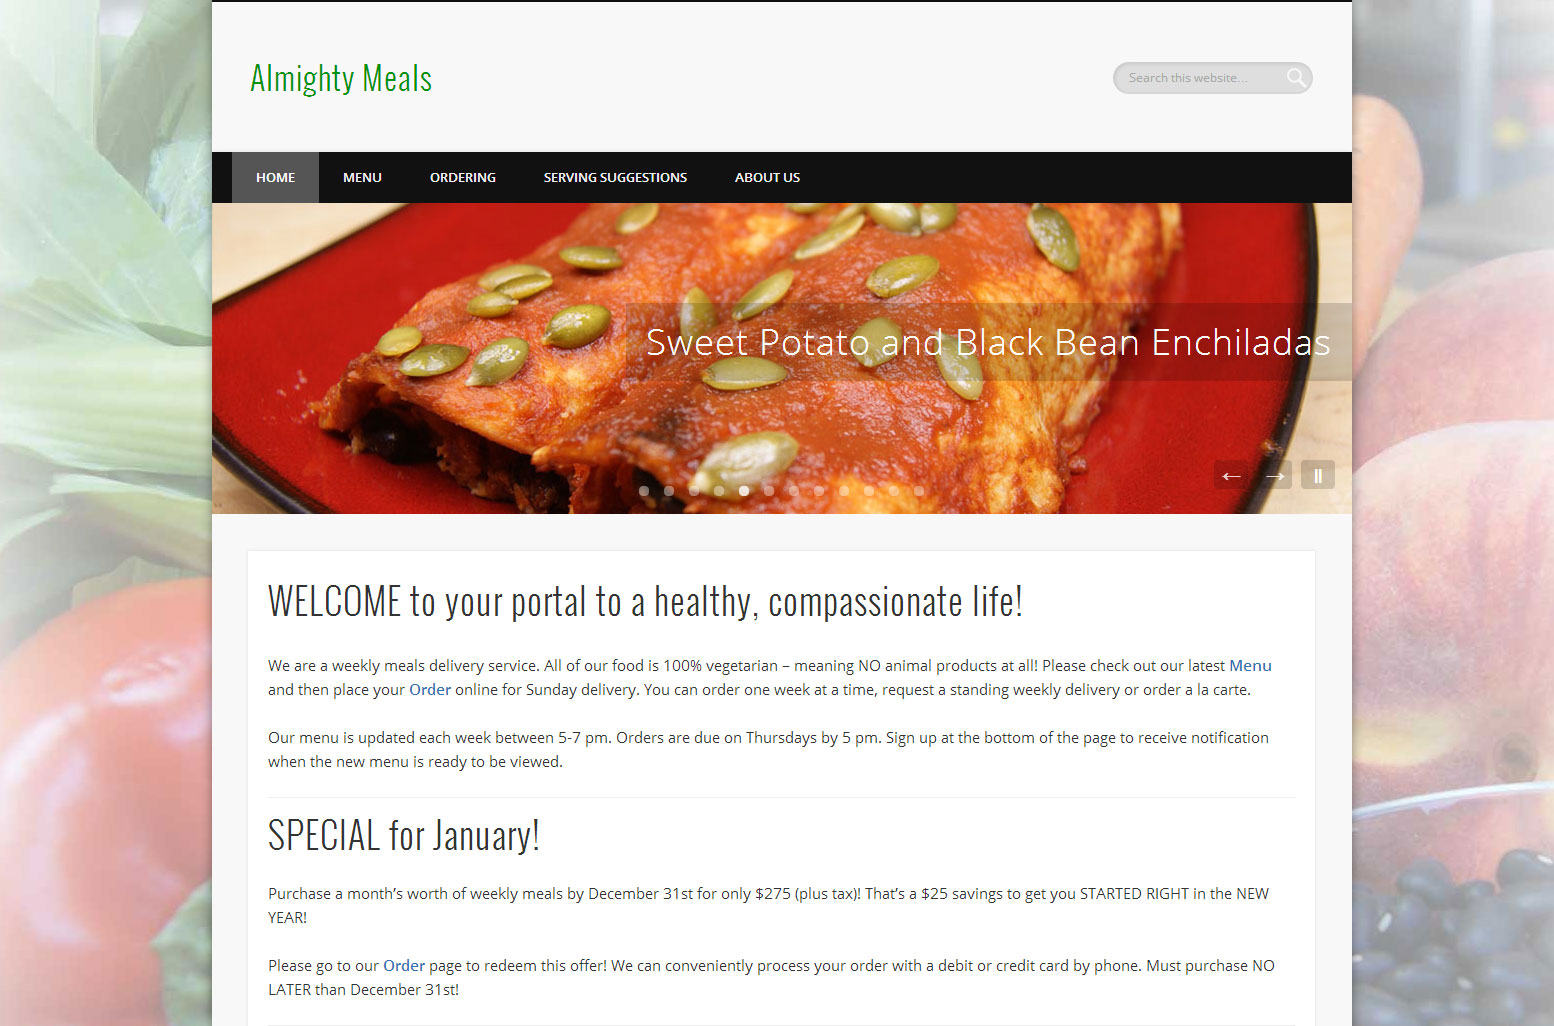 Almighty Meals Website